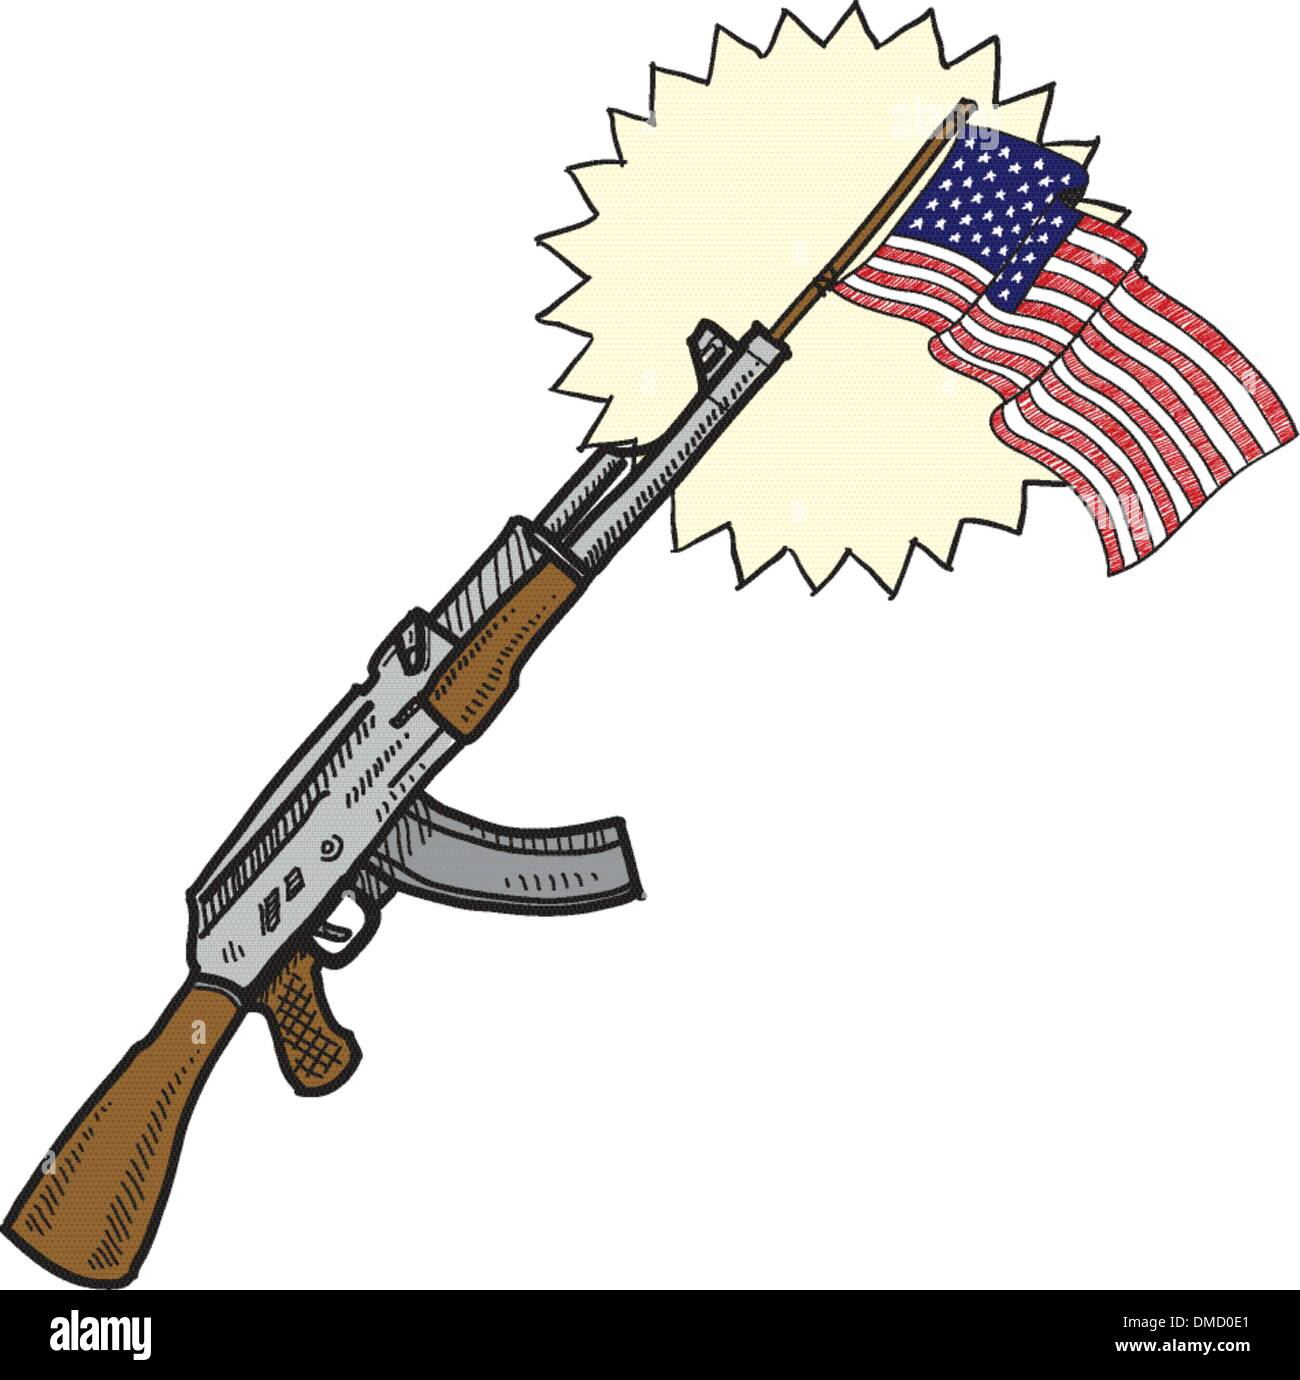 All-American assault rifle sketch - Stock Image